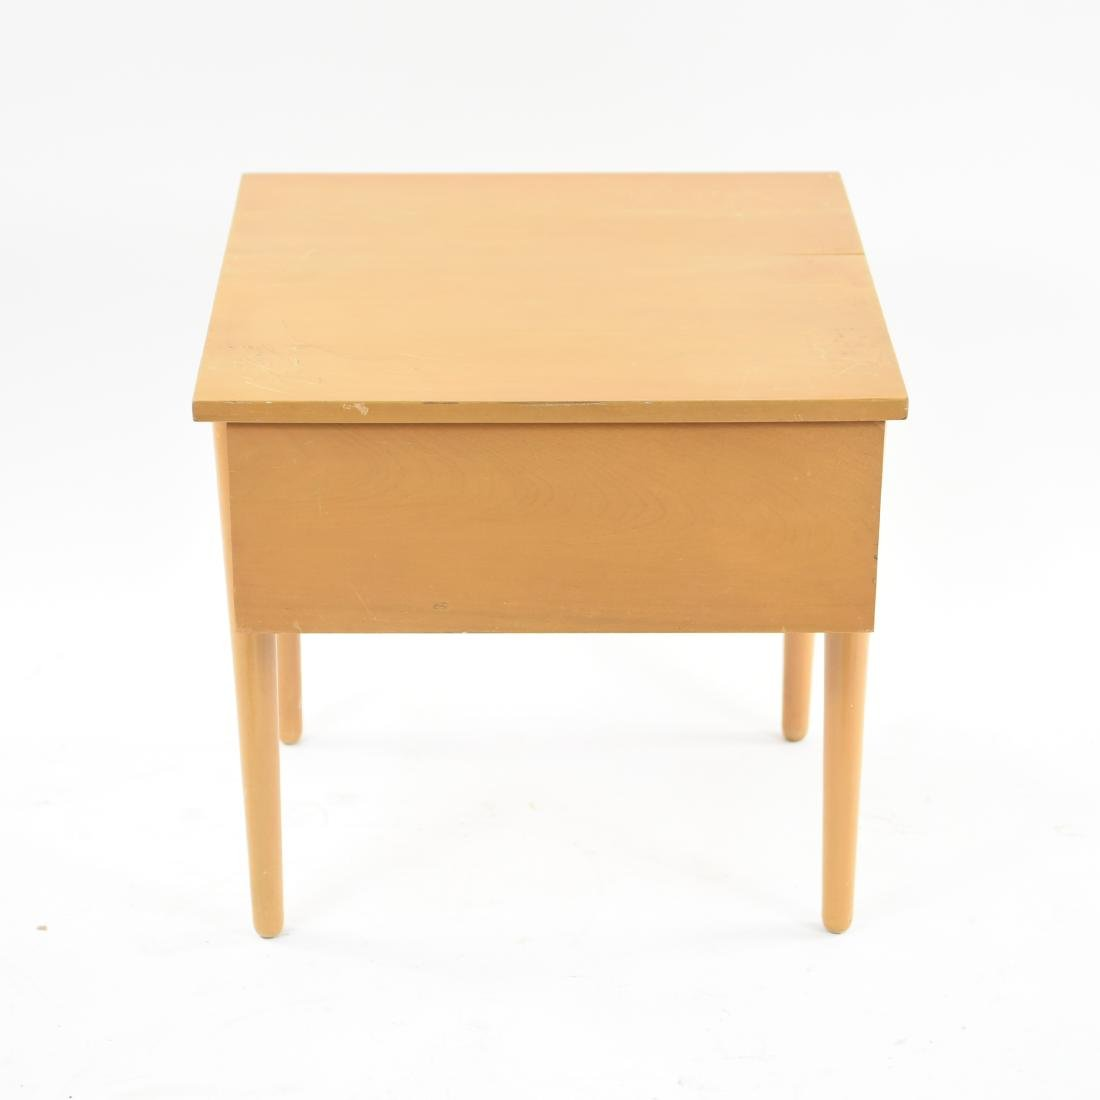 MID-CENTURY BIRCH SIDE TABLE